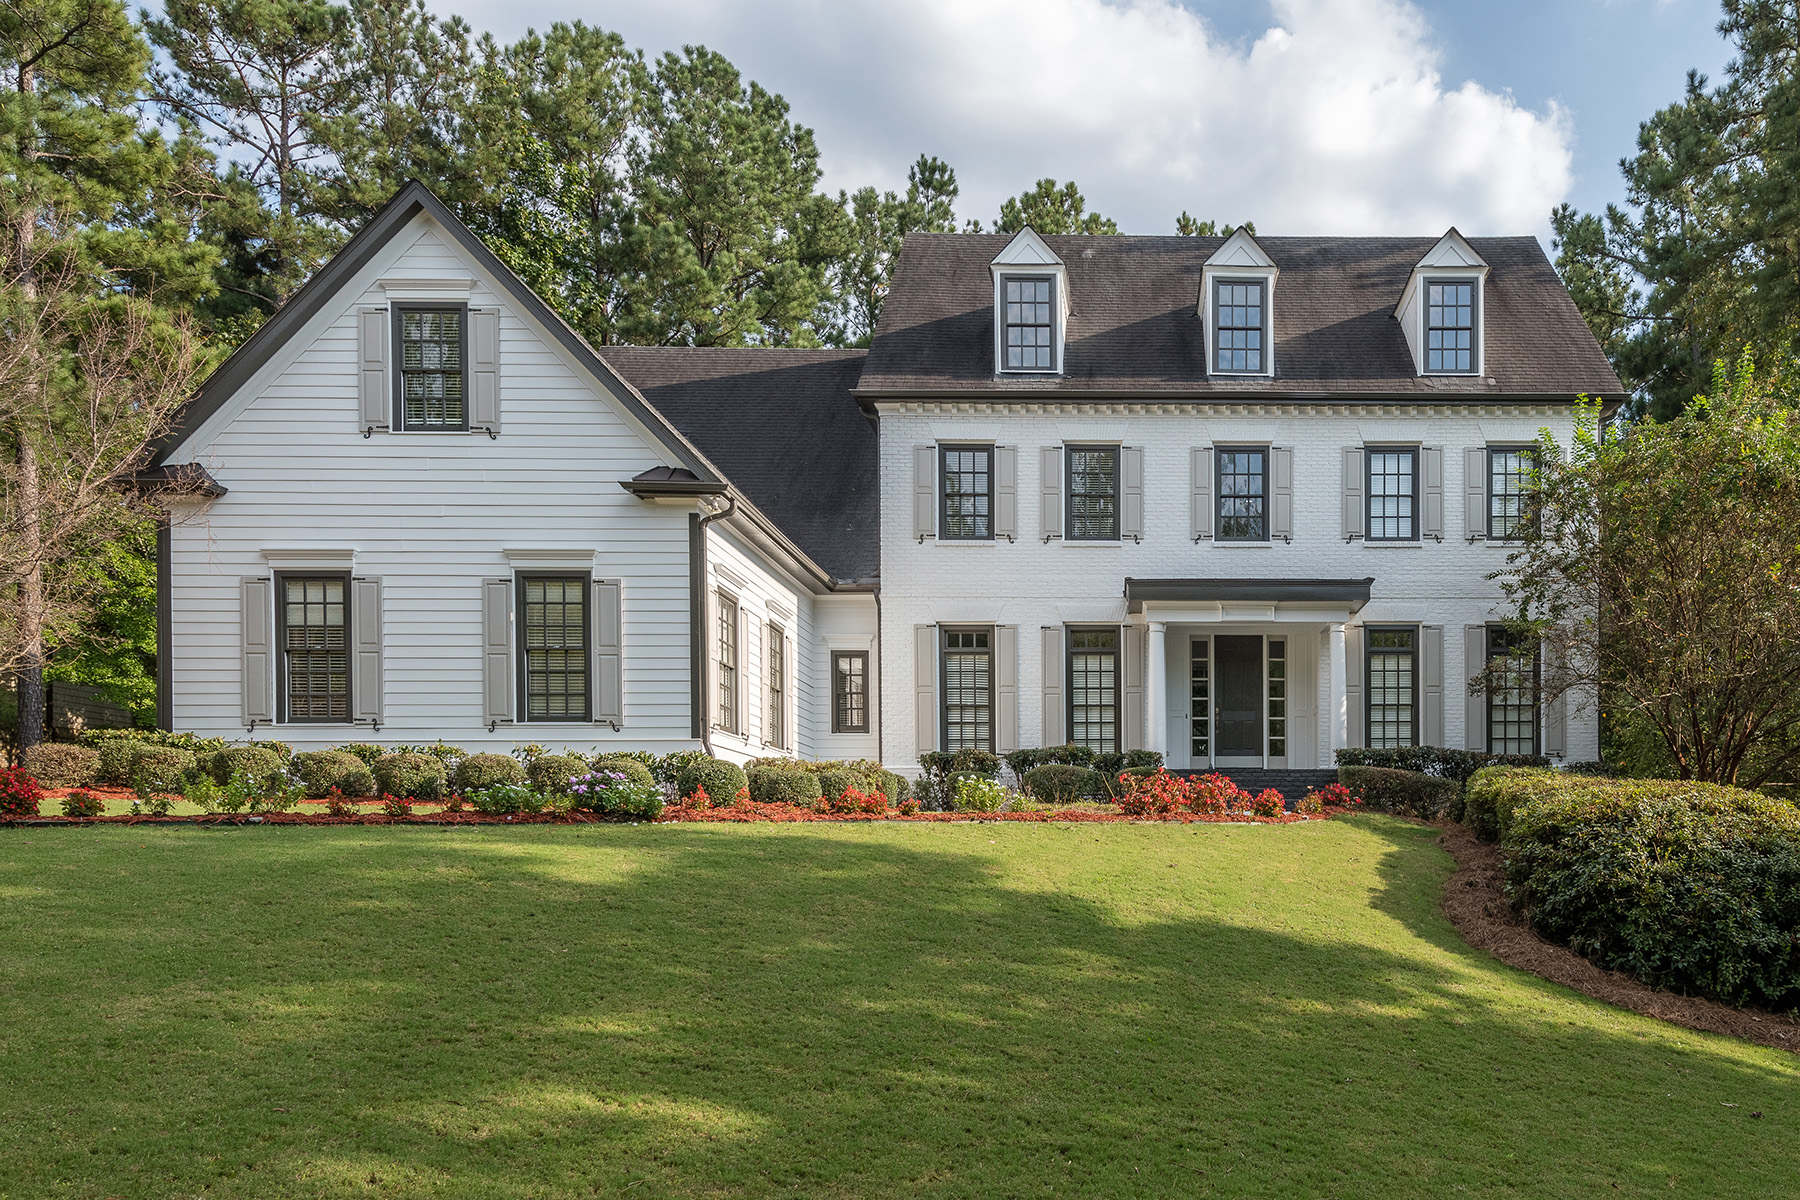 Single Family Home for Sale at Country Club Setting, Golf Course View 6217 Arnall Court NW Acworth, Georgia 30101 United States